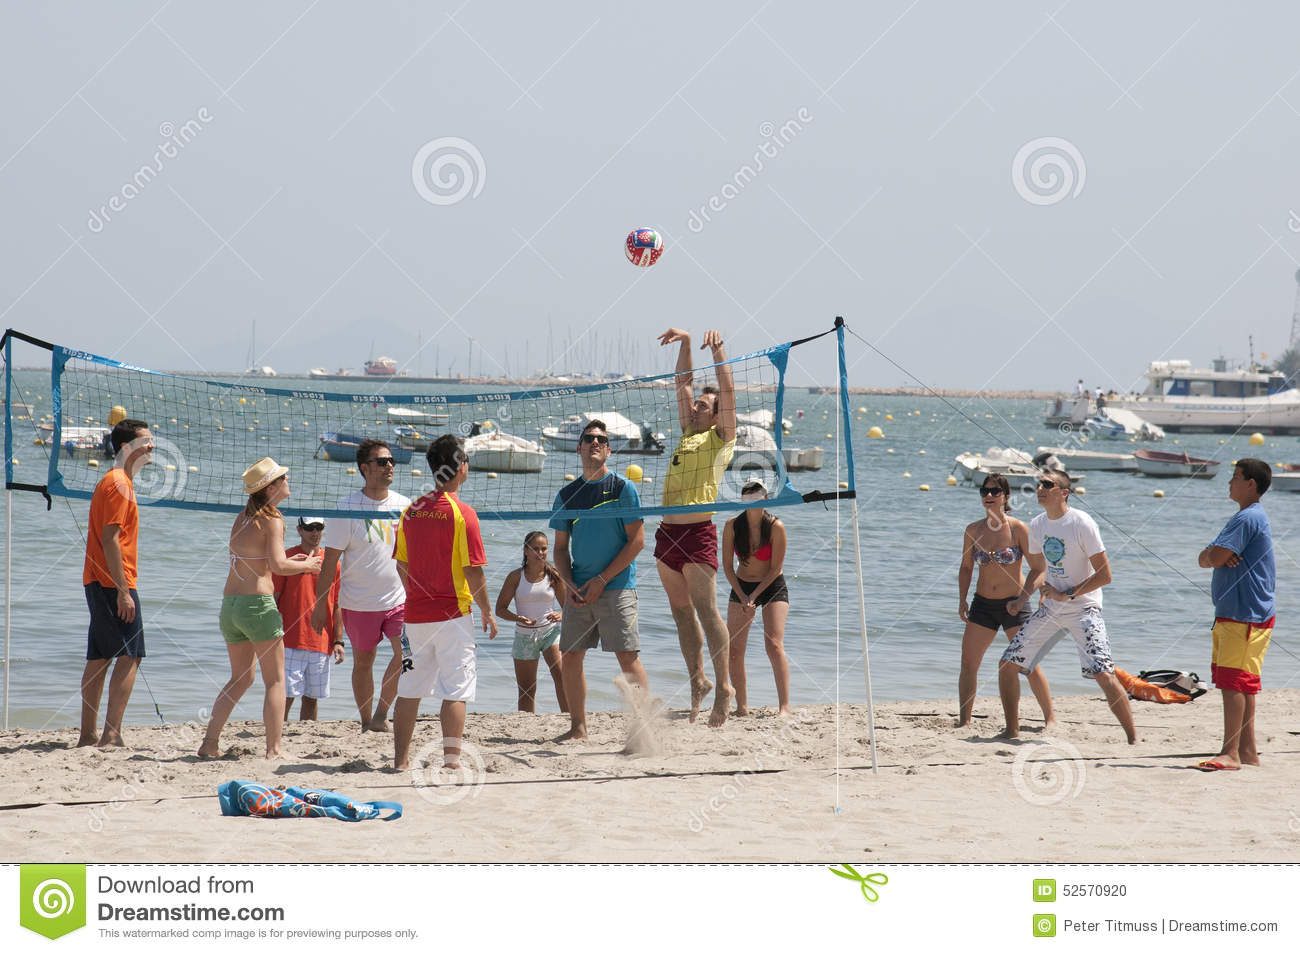 Volleyball match on the beach